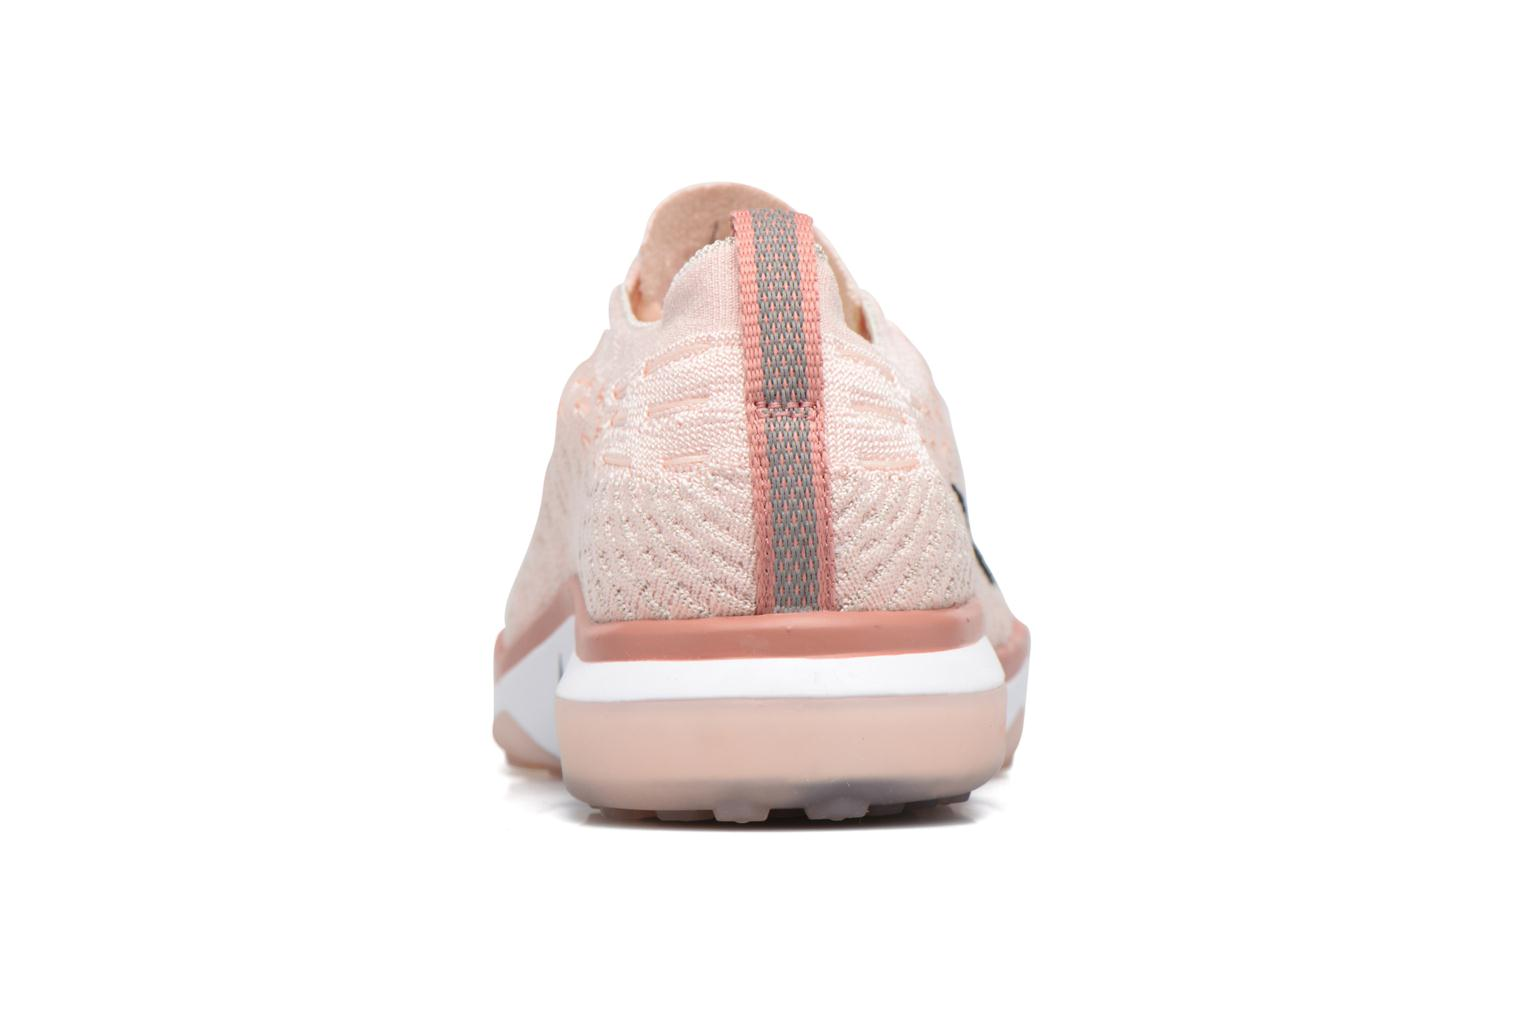 Chaussures de sport Nike W Air Zoom Fearless Fk Bionic Rose vue droite